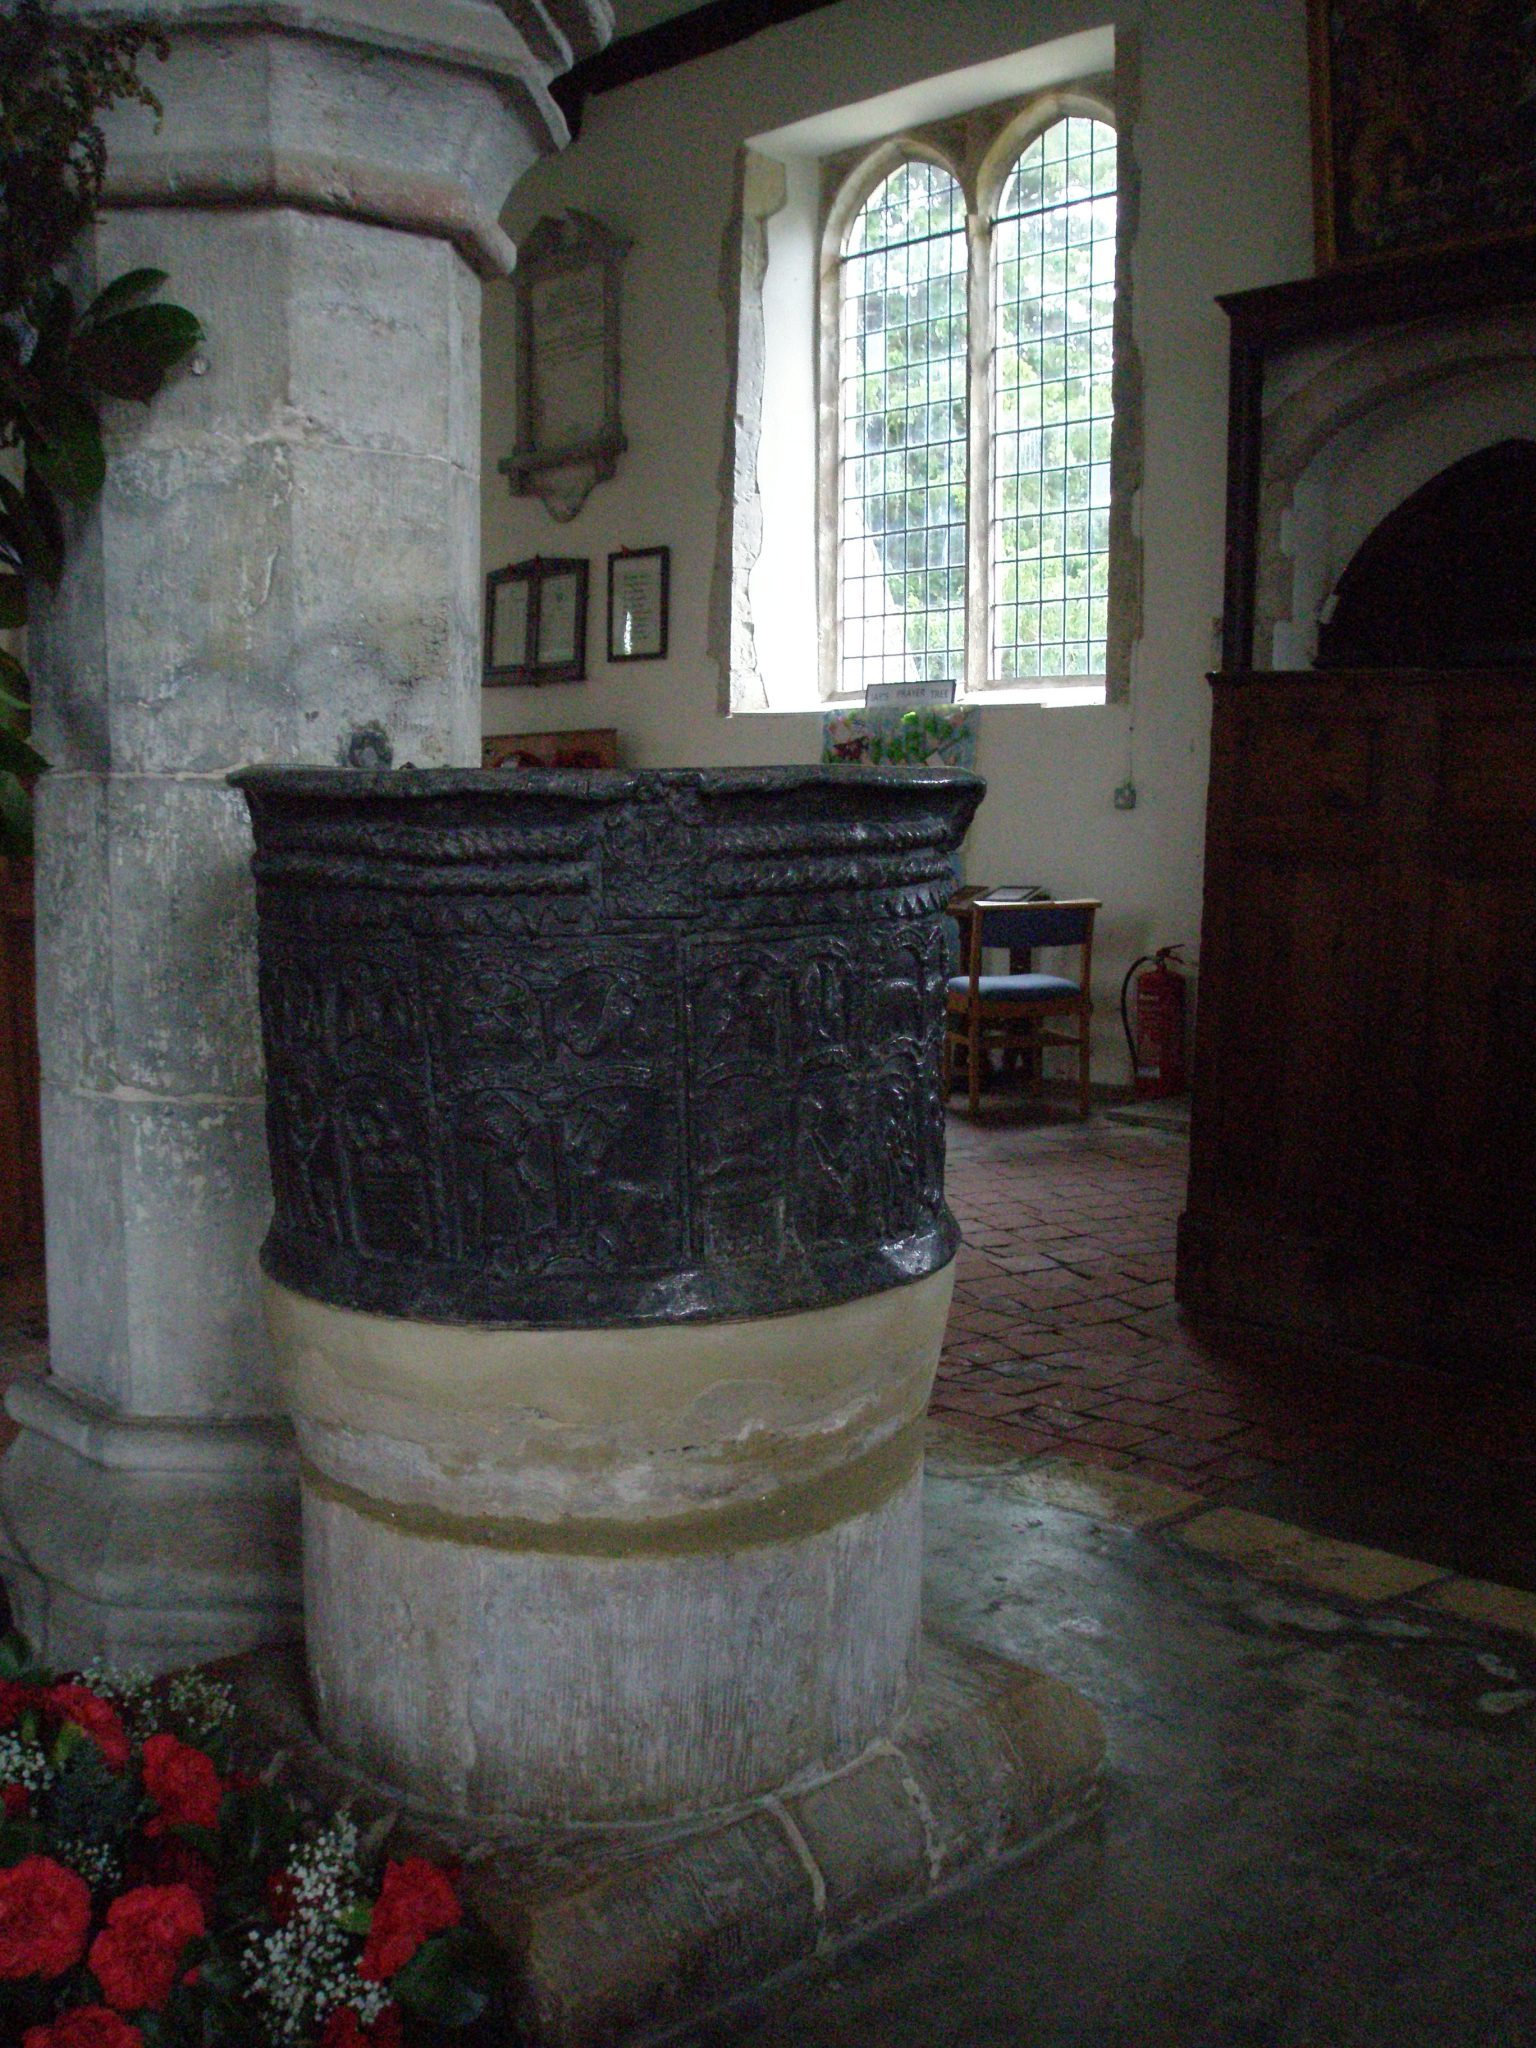 The round, lead Font dates from the 12th century.